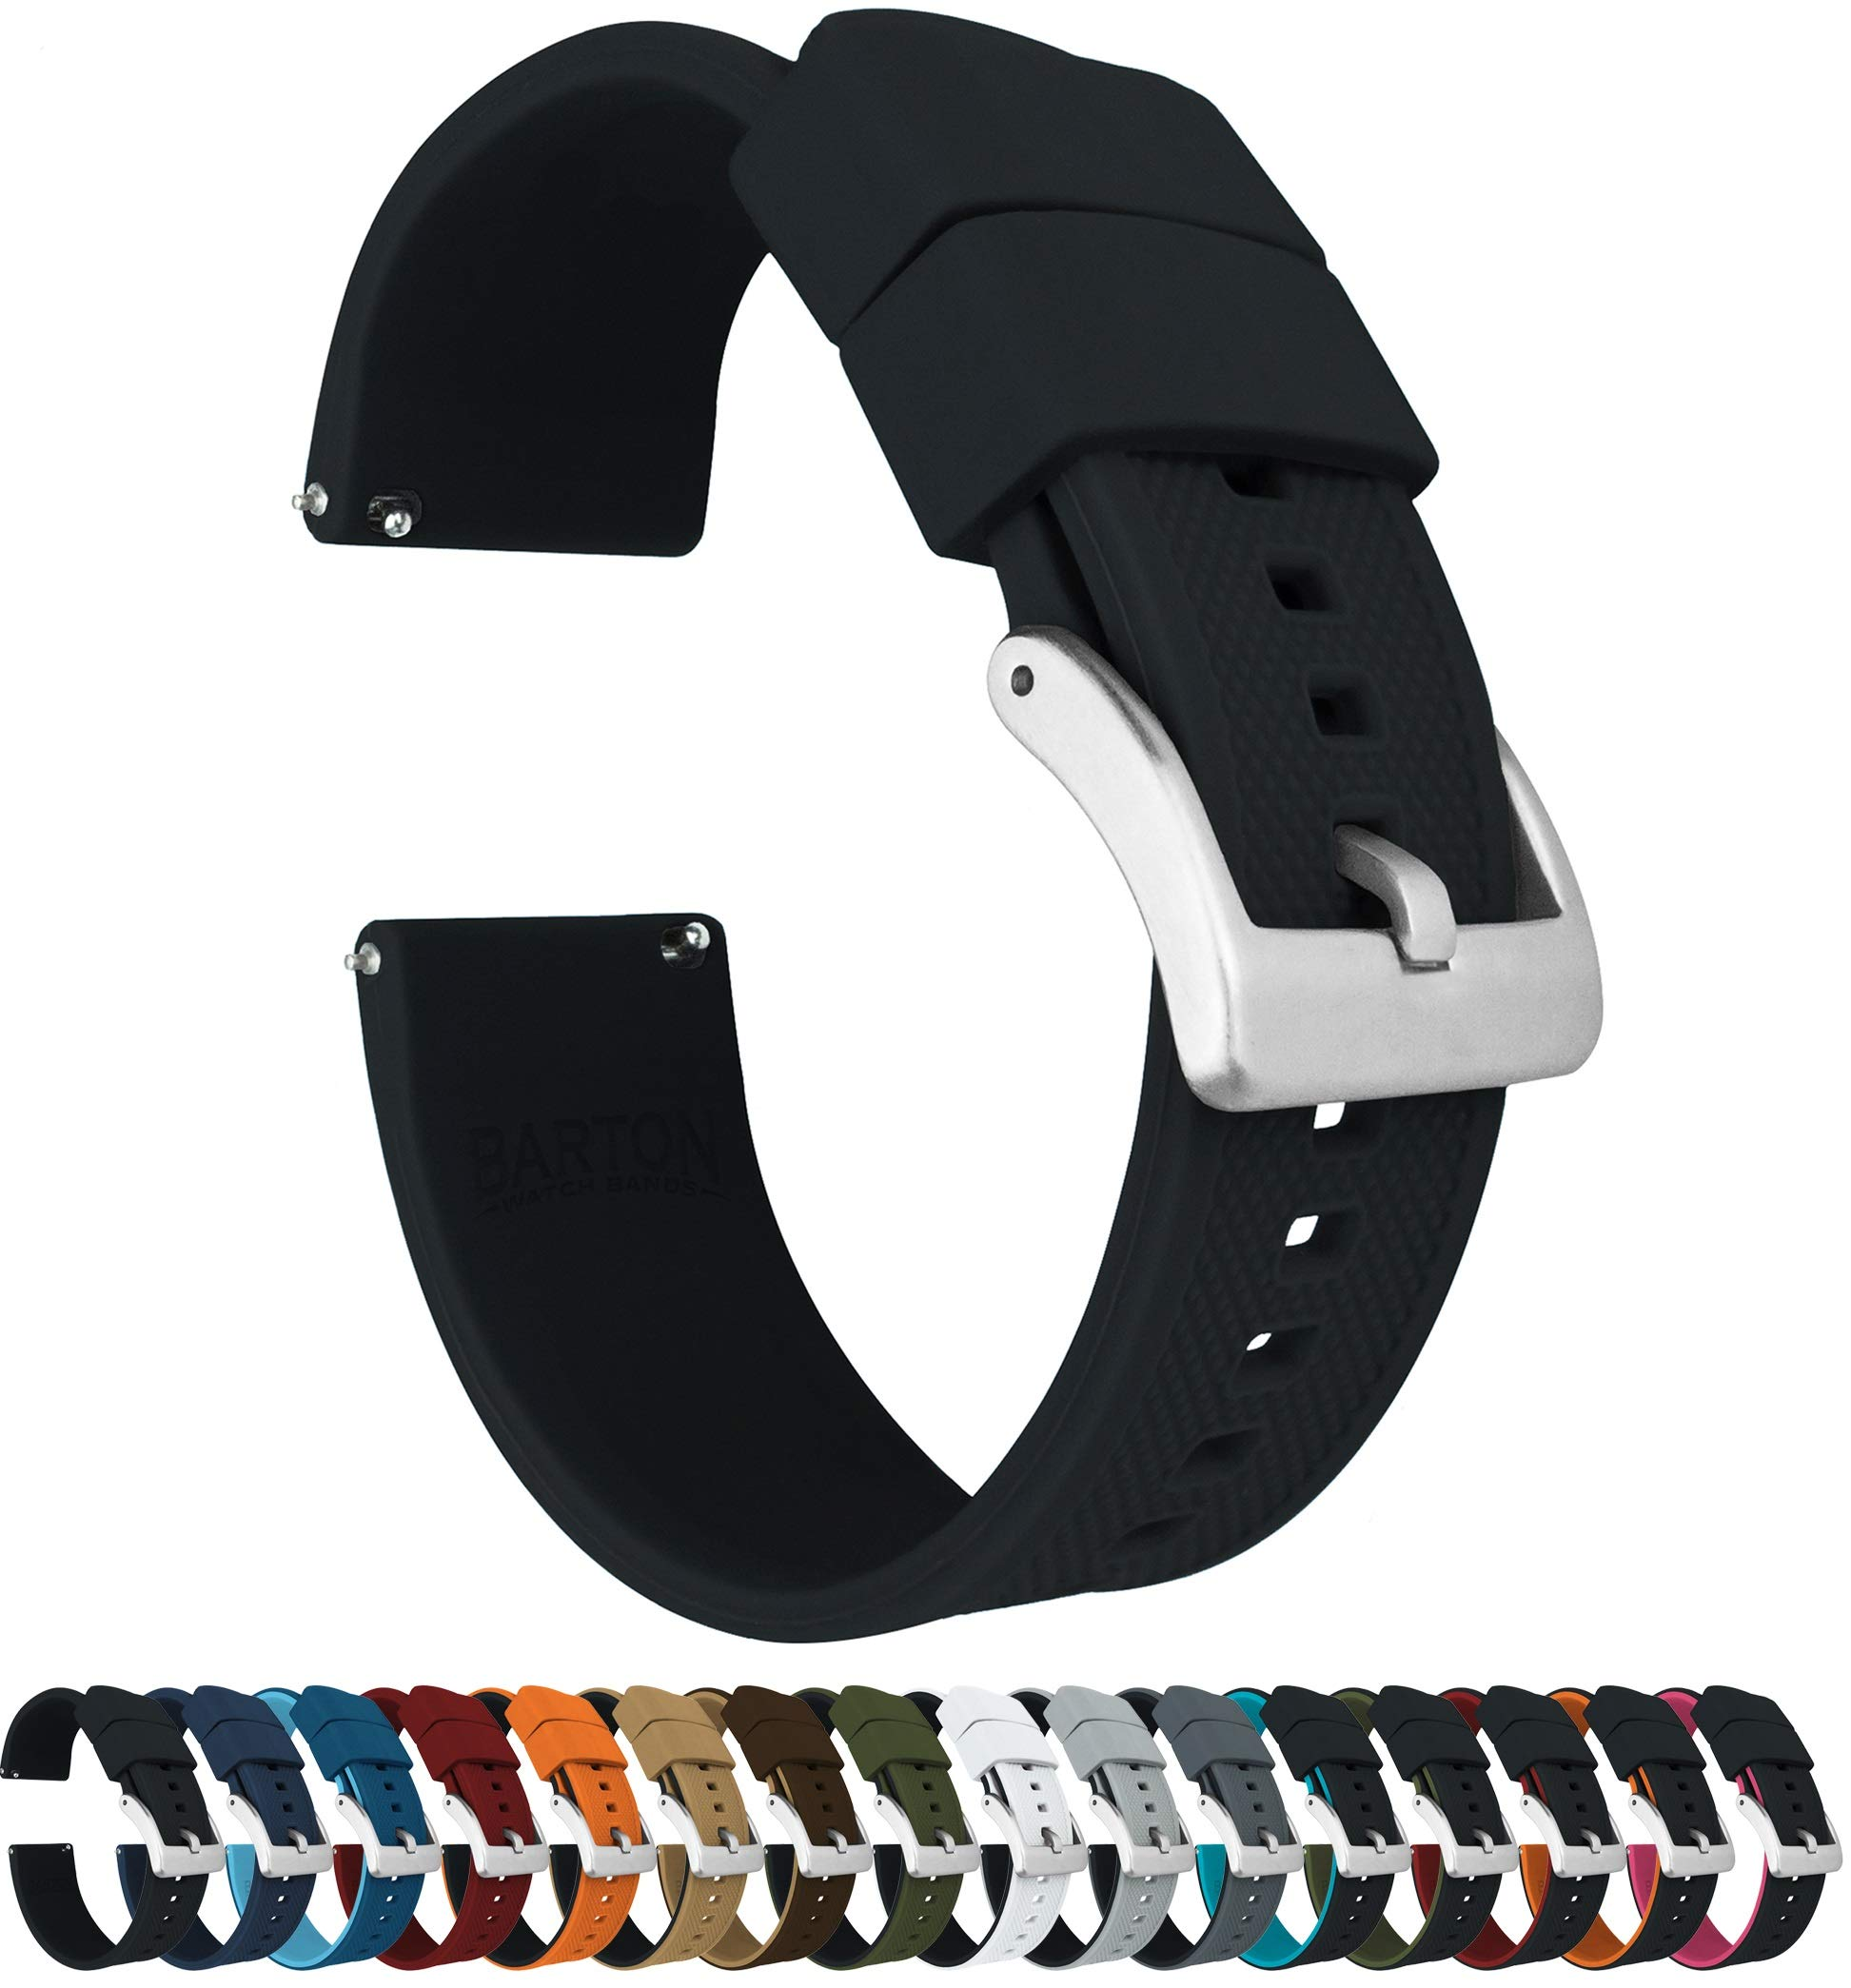 22mm Black - Barton Elite Silicone Watch Bands - Quick Release - Choose Strap Color & Width by Barton Watch Bands